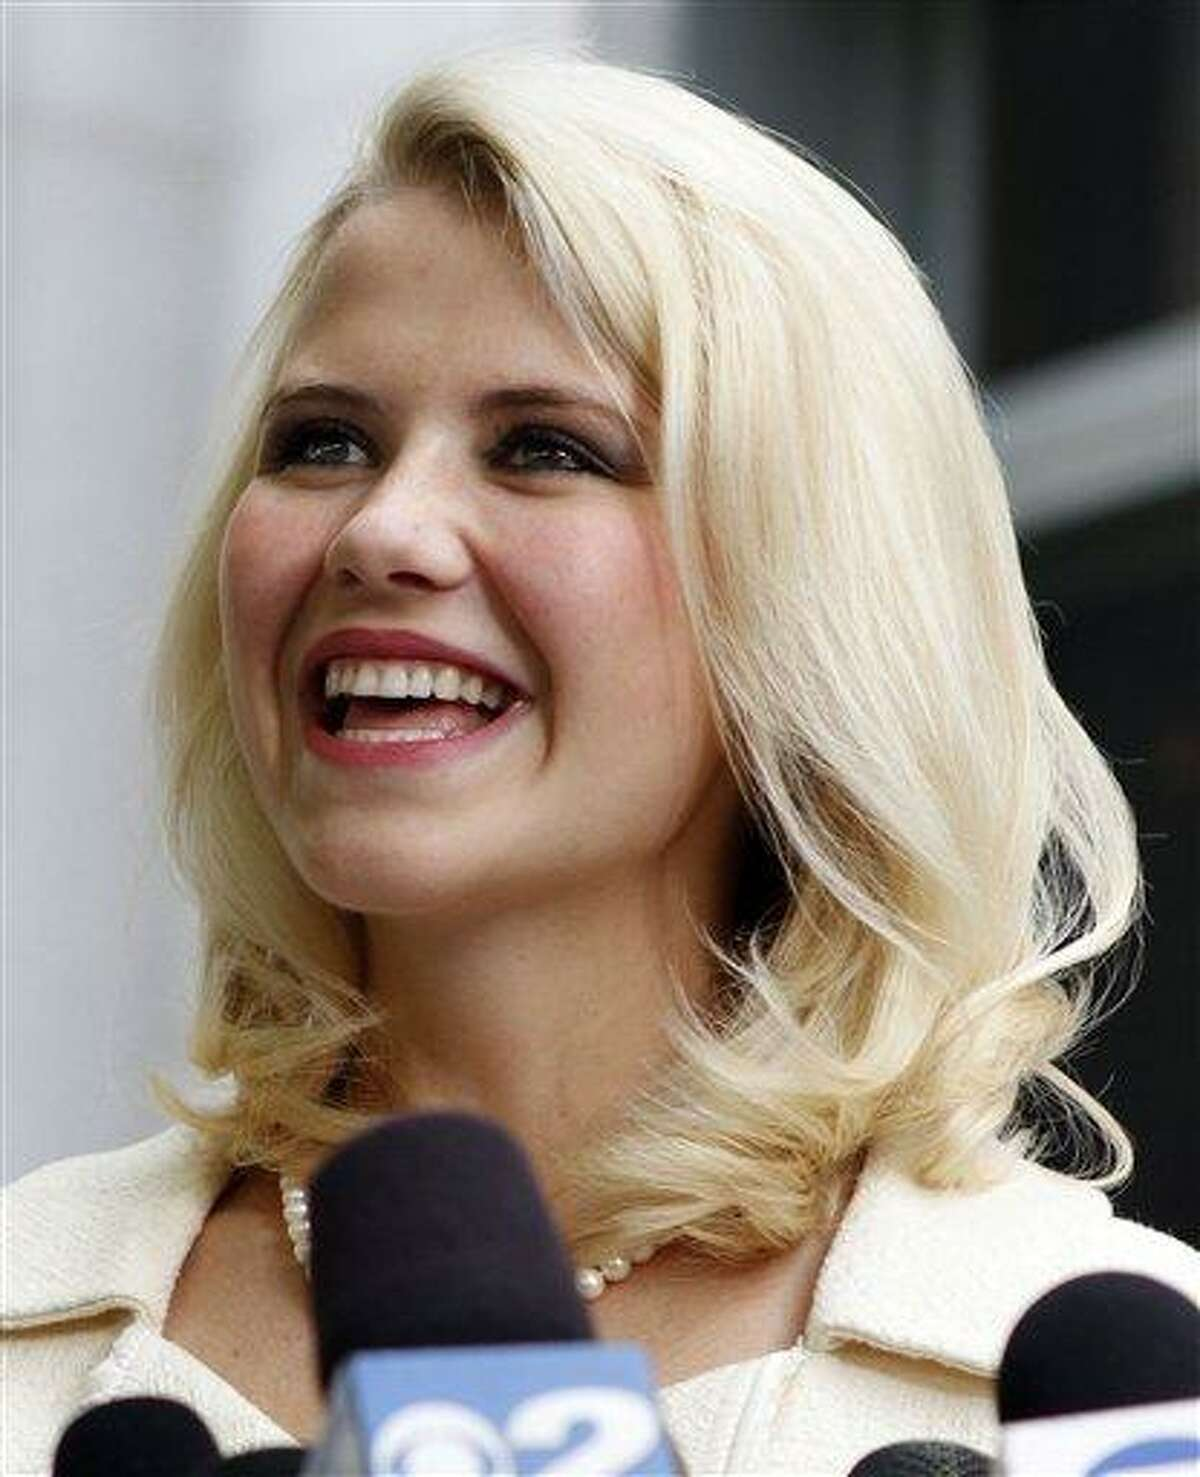 Elizabeth Smart talks to the media in May 2011 in front of the Frank E. Moss Federal Courthouse in Salt Lake City. A family spokesman says the Utah woman who was kidnapped at knifepoint at age 14 and held captive for nine months married Matthew Gilmour Saturday in Oahu. Smart, 24, is a senior at Brigham Young University. She met Gilmour, of Aberdeen, Scotland, while serving a Church of Jesus Christ of Latter-day Saints mission in France. Associated Press